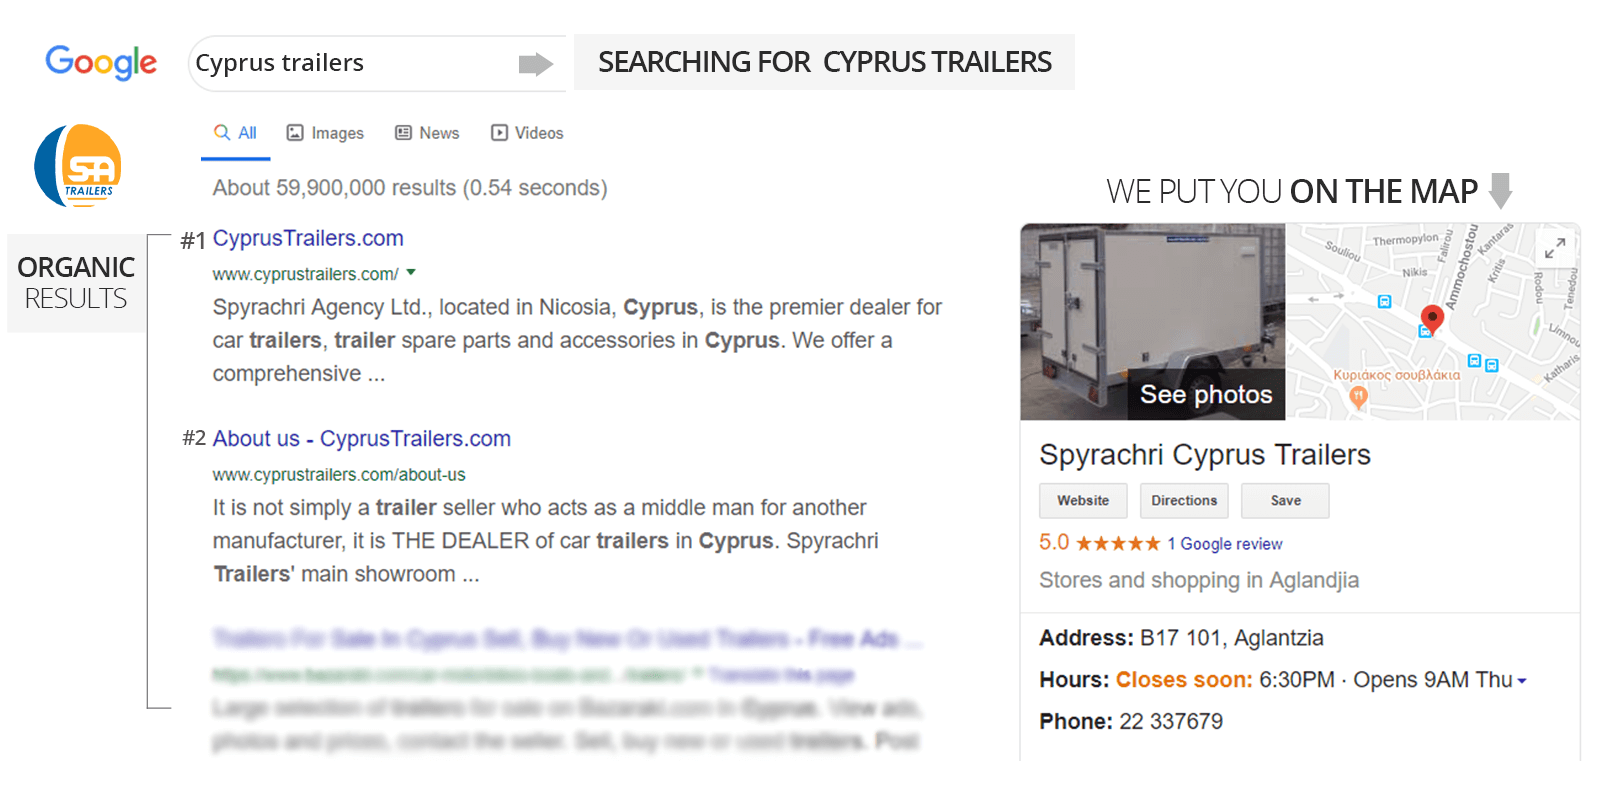 SEO for Cyprus Trailers